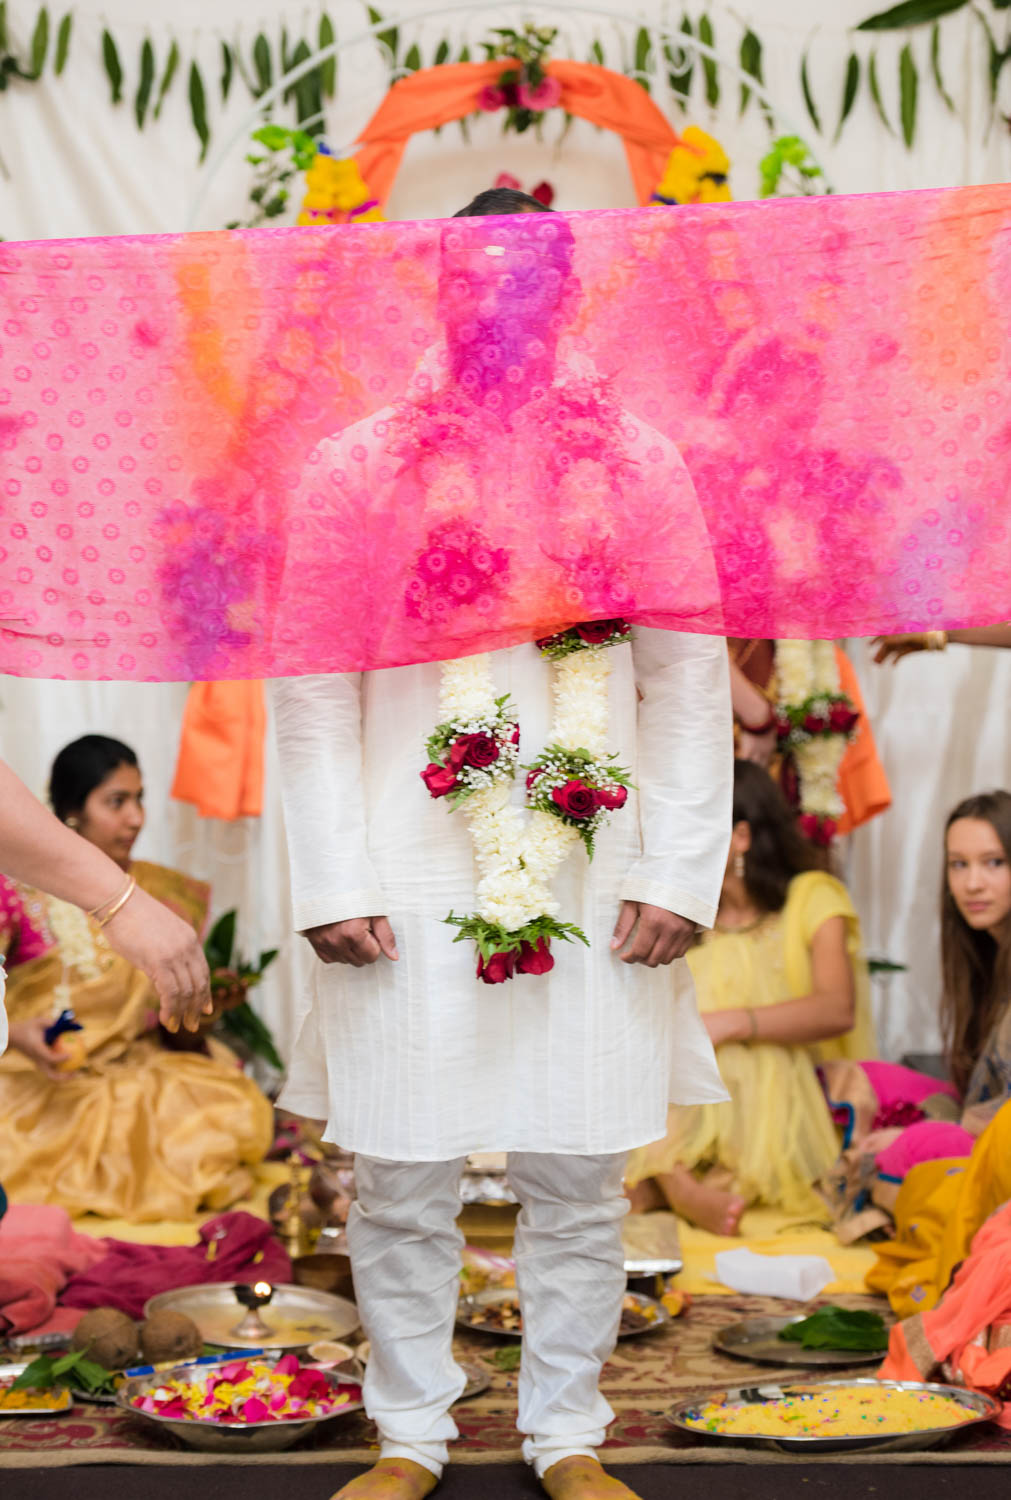 ecaterina-chandu-indian-wedding14.jpg